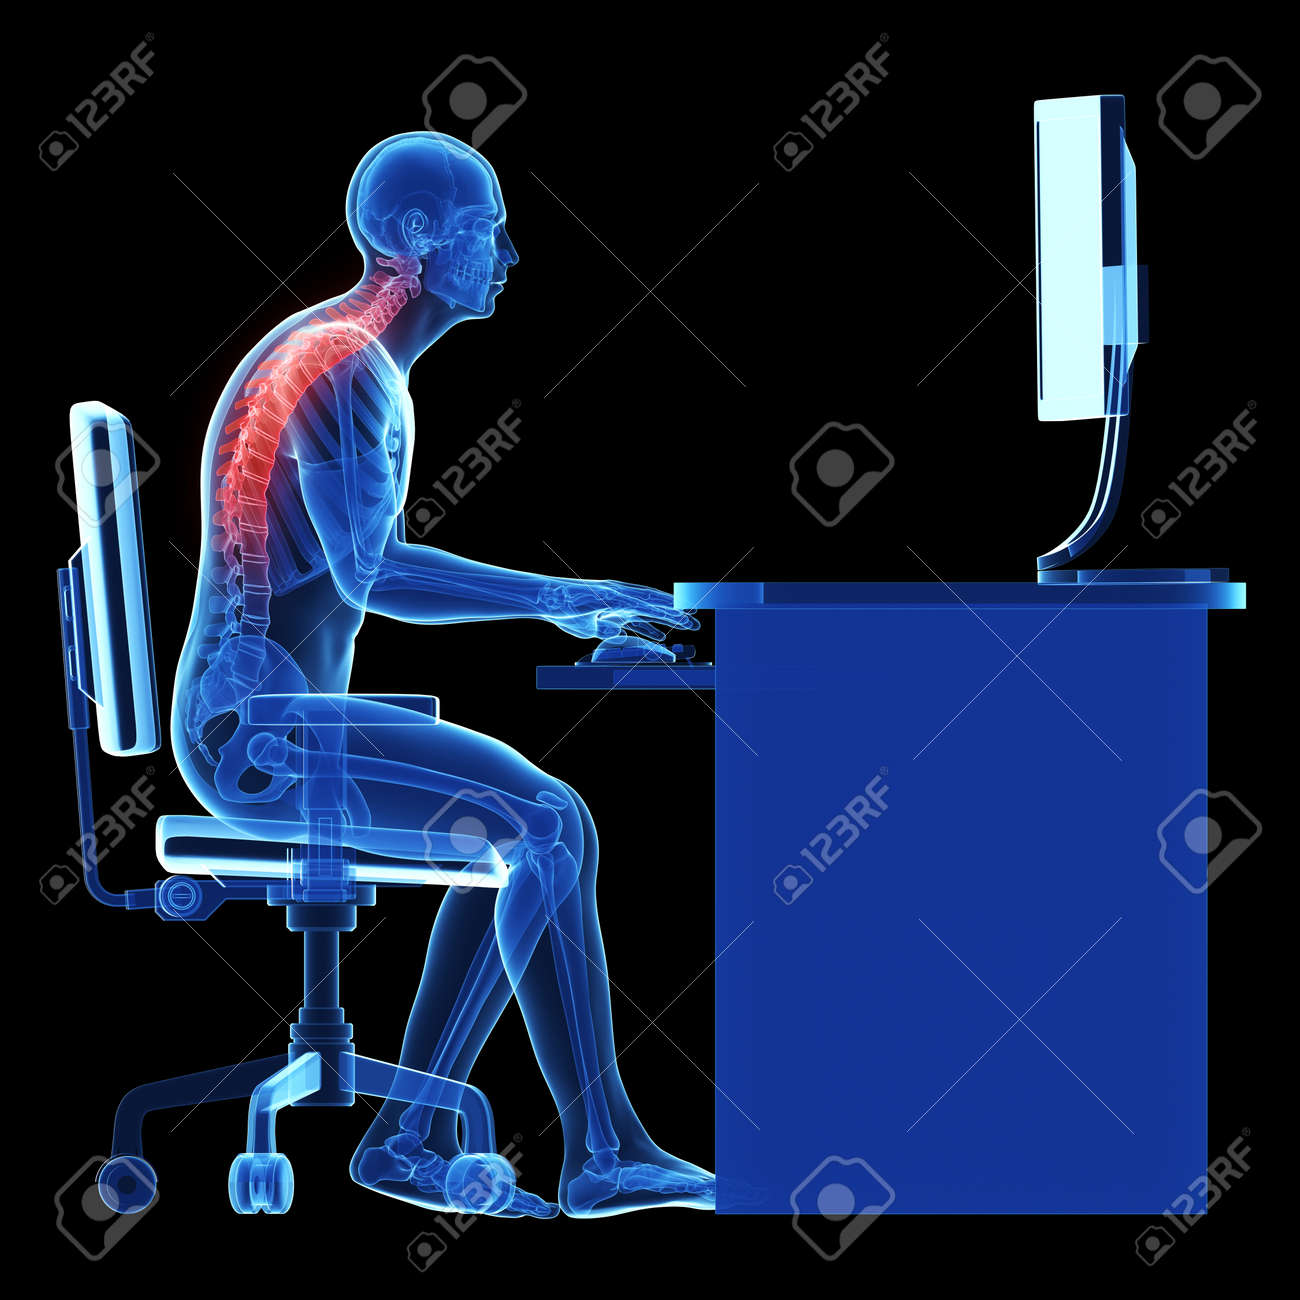 3d rendered medical illustration - wrong sitting posture Stock Illustration - 22584223